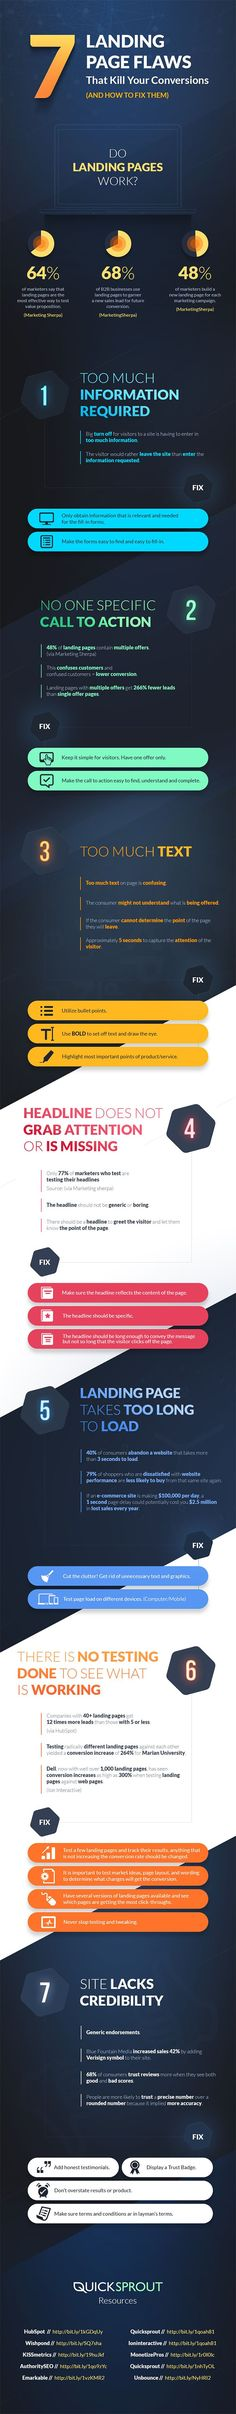 7 Stupid Landing Page Mistakes that are Killing Your Website